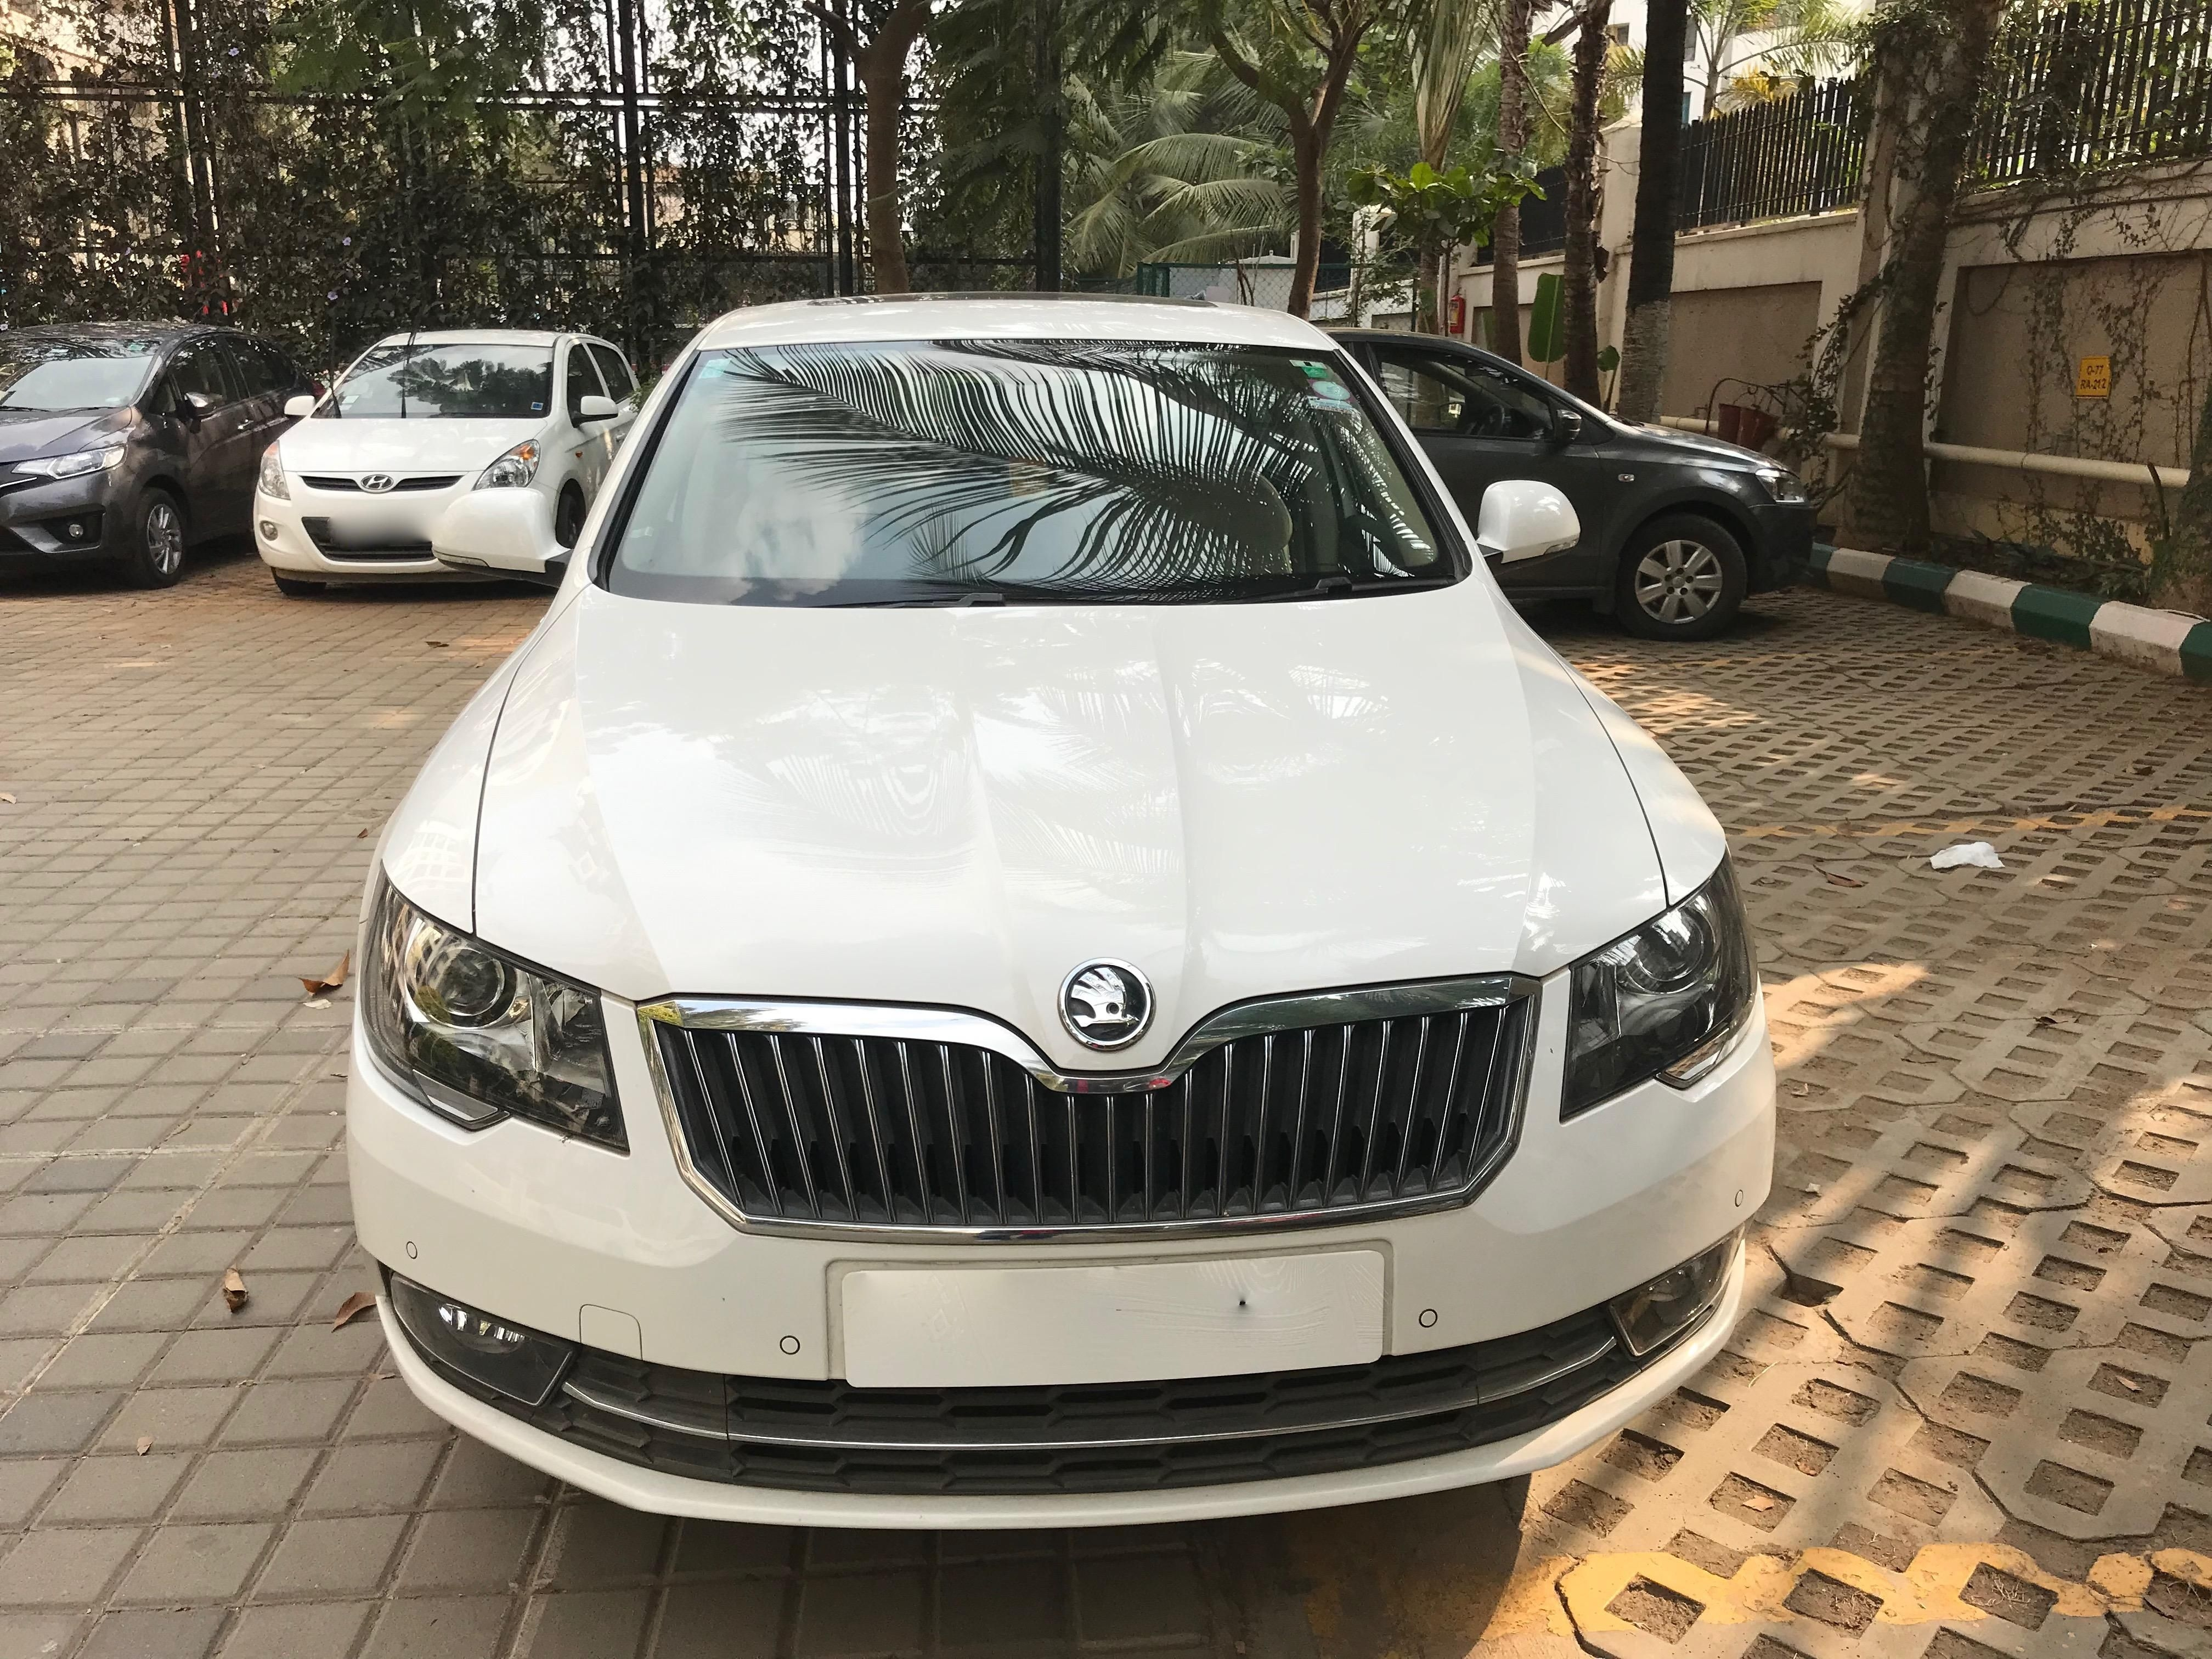 Skoda Superb Car For Sale In Bangalore Id 1416968901 Droom